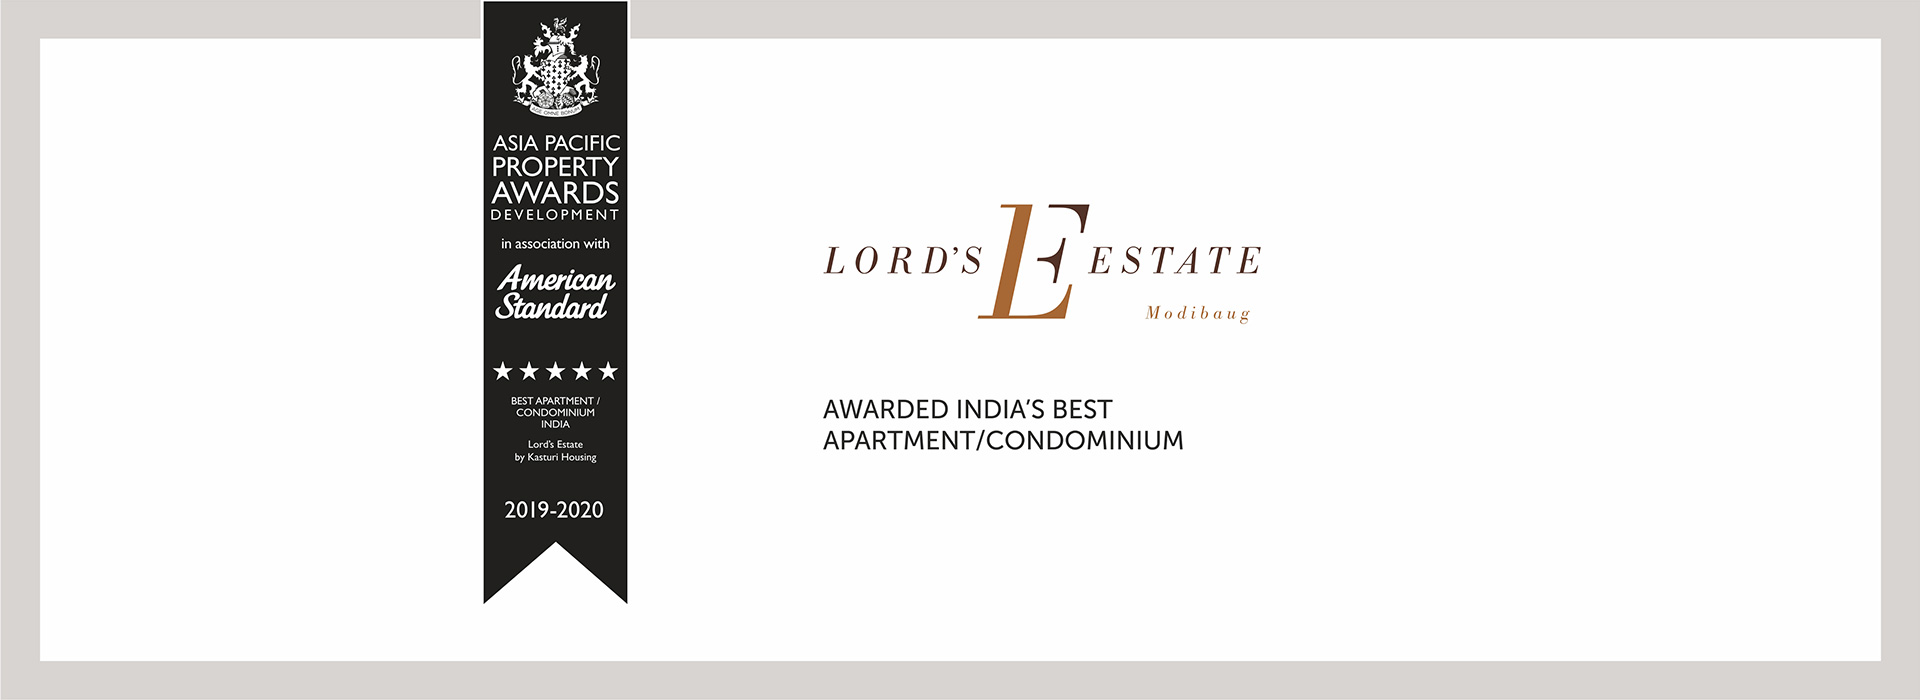 Lord's estate banner